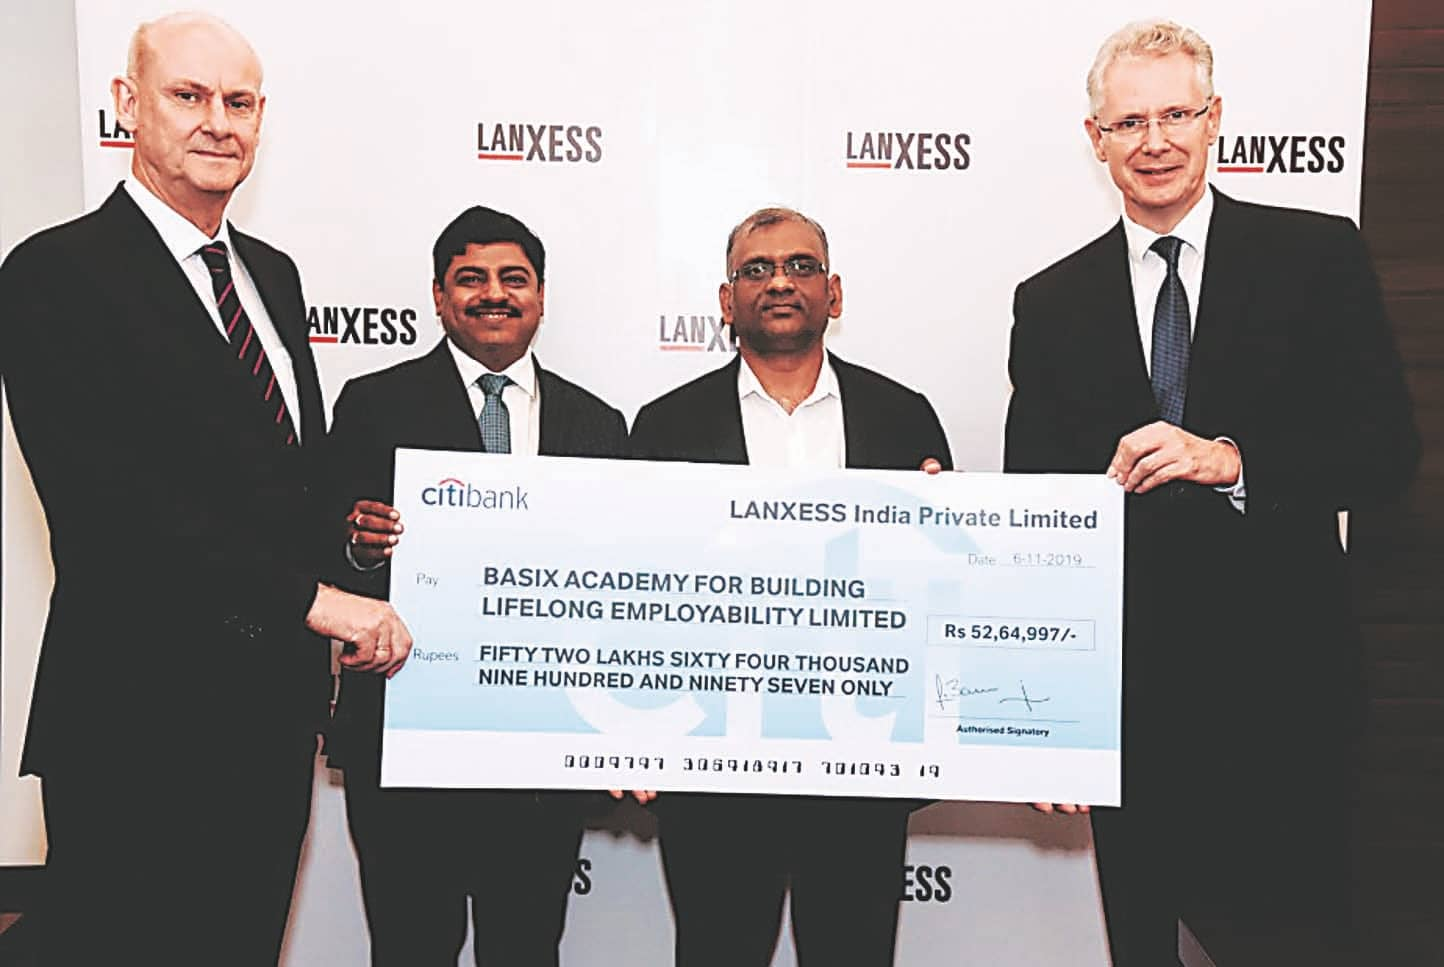 LANXNESS India Adds To Employability Through Its Vocational Skill Centre